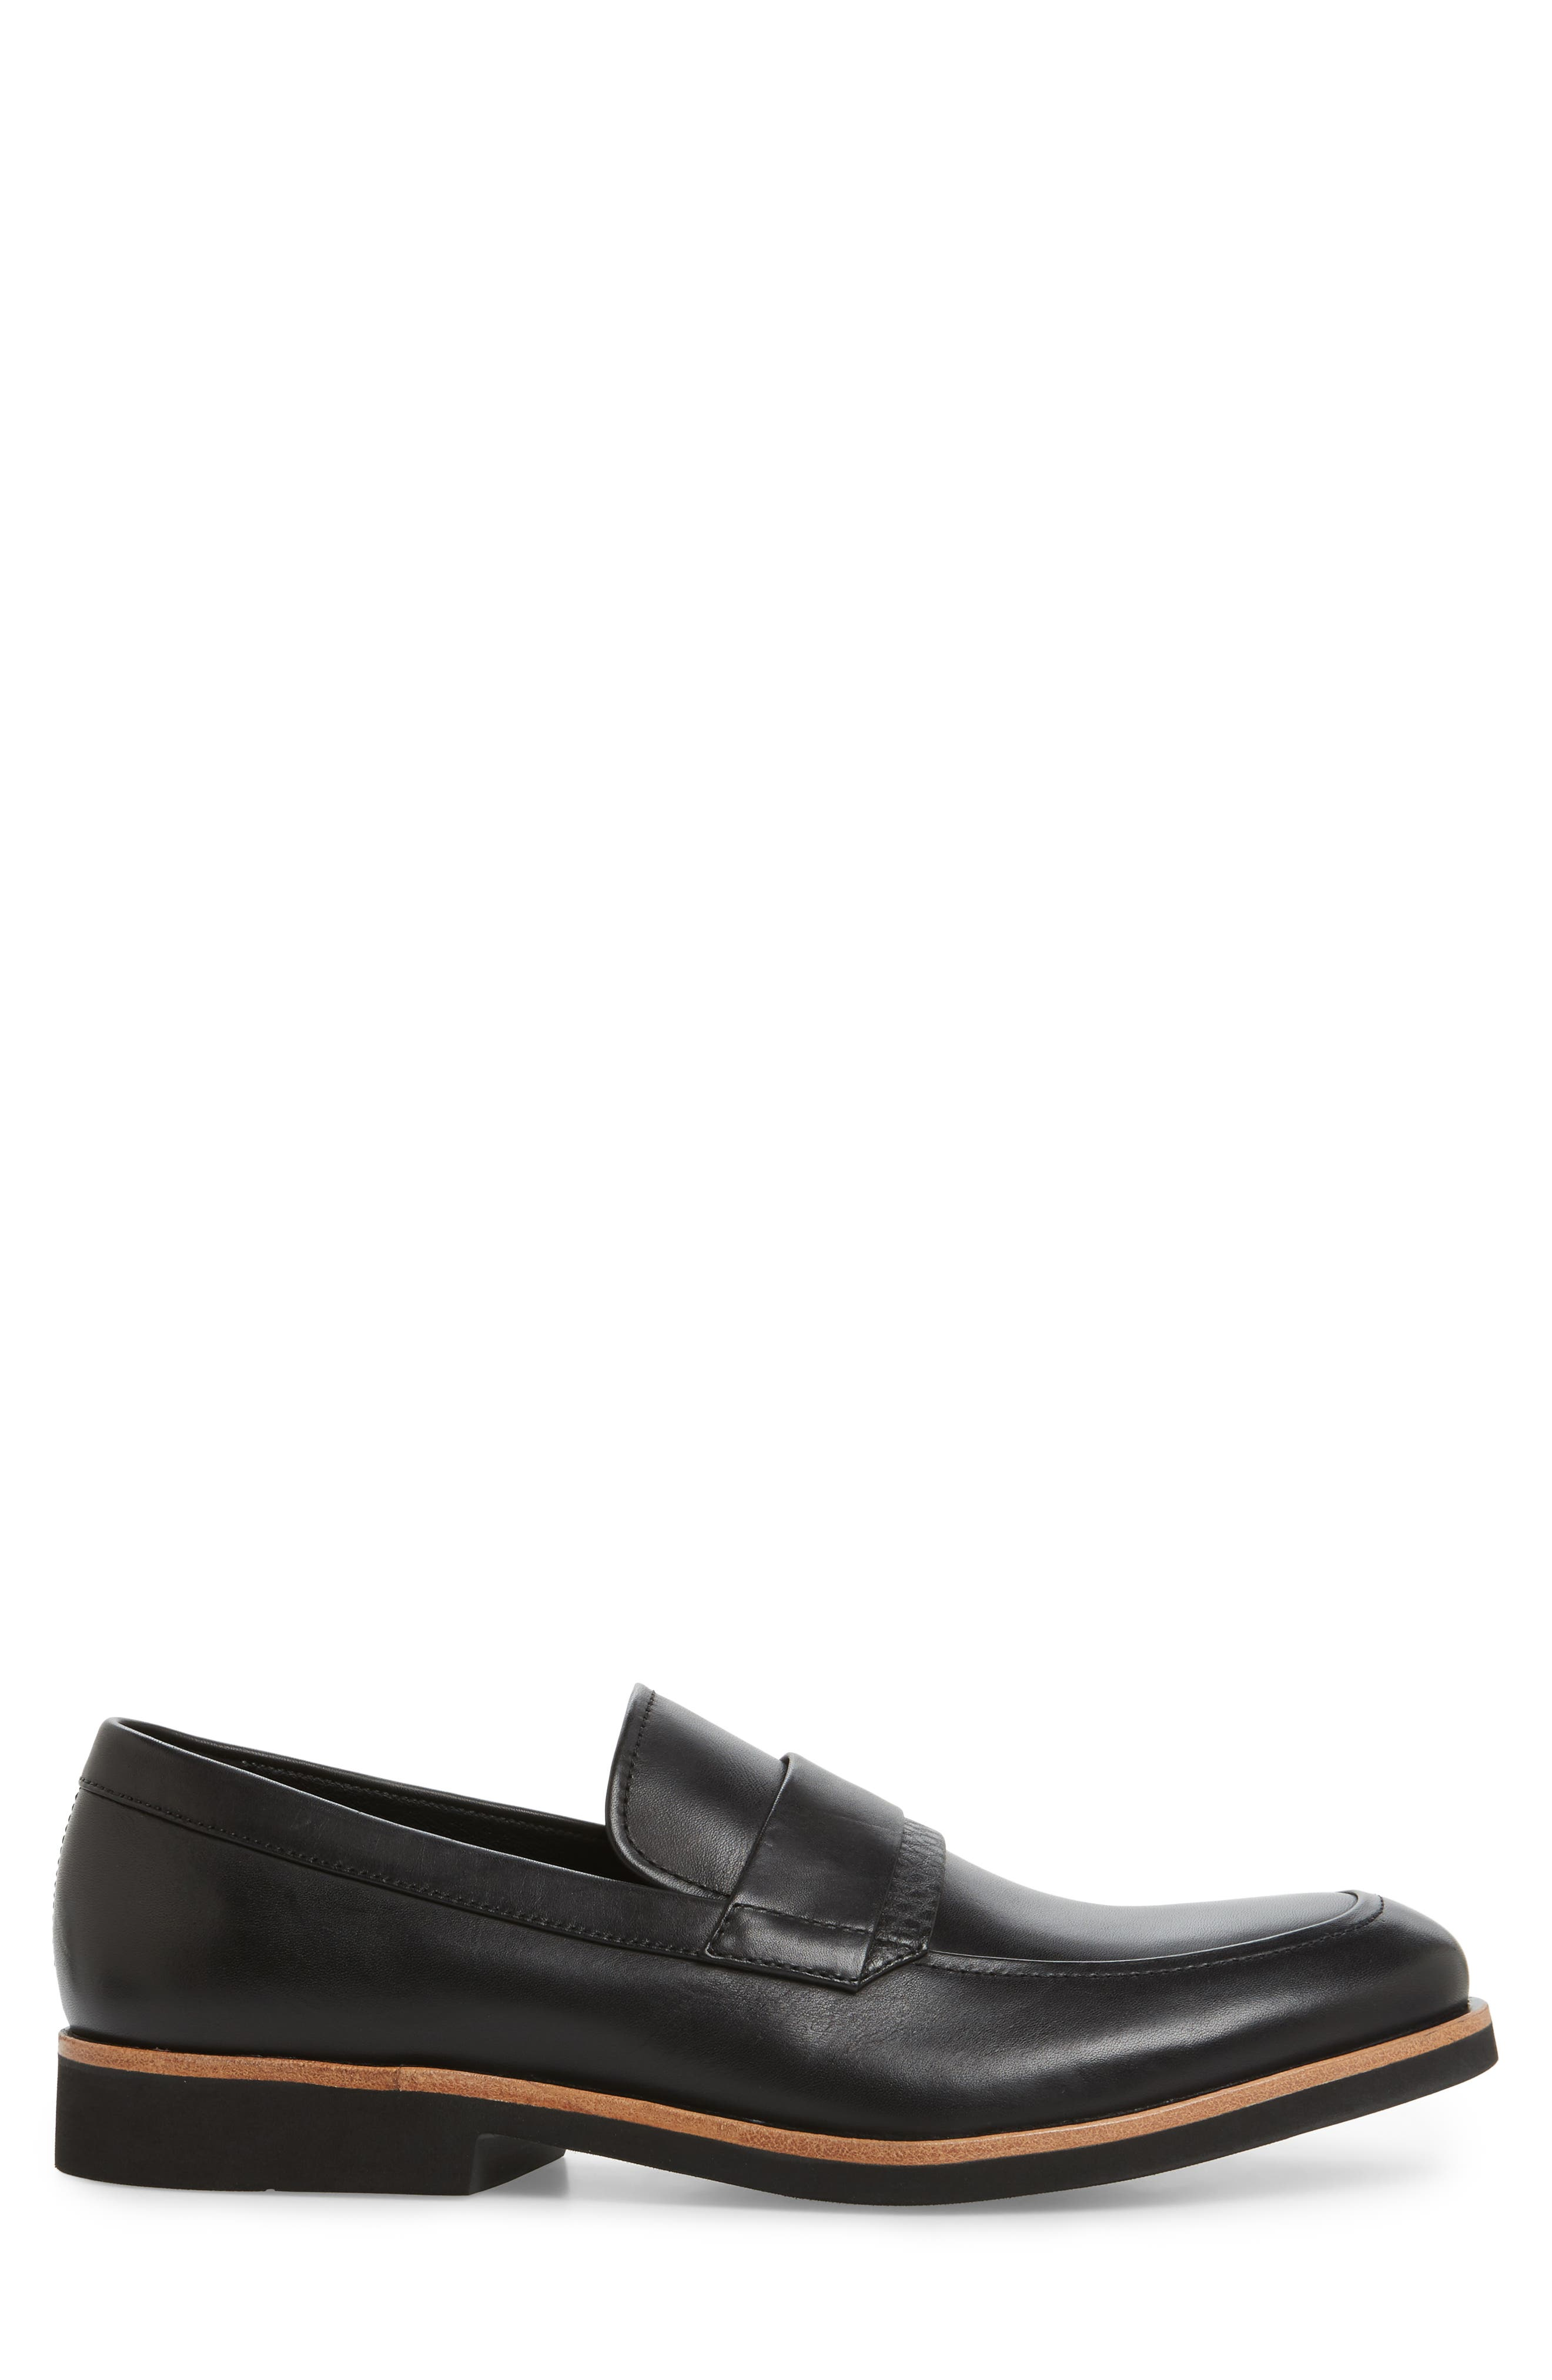 Forbes Loafer,                             Alternate thumbnail 3, color,                             001